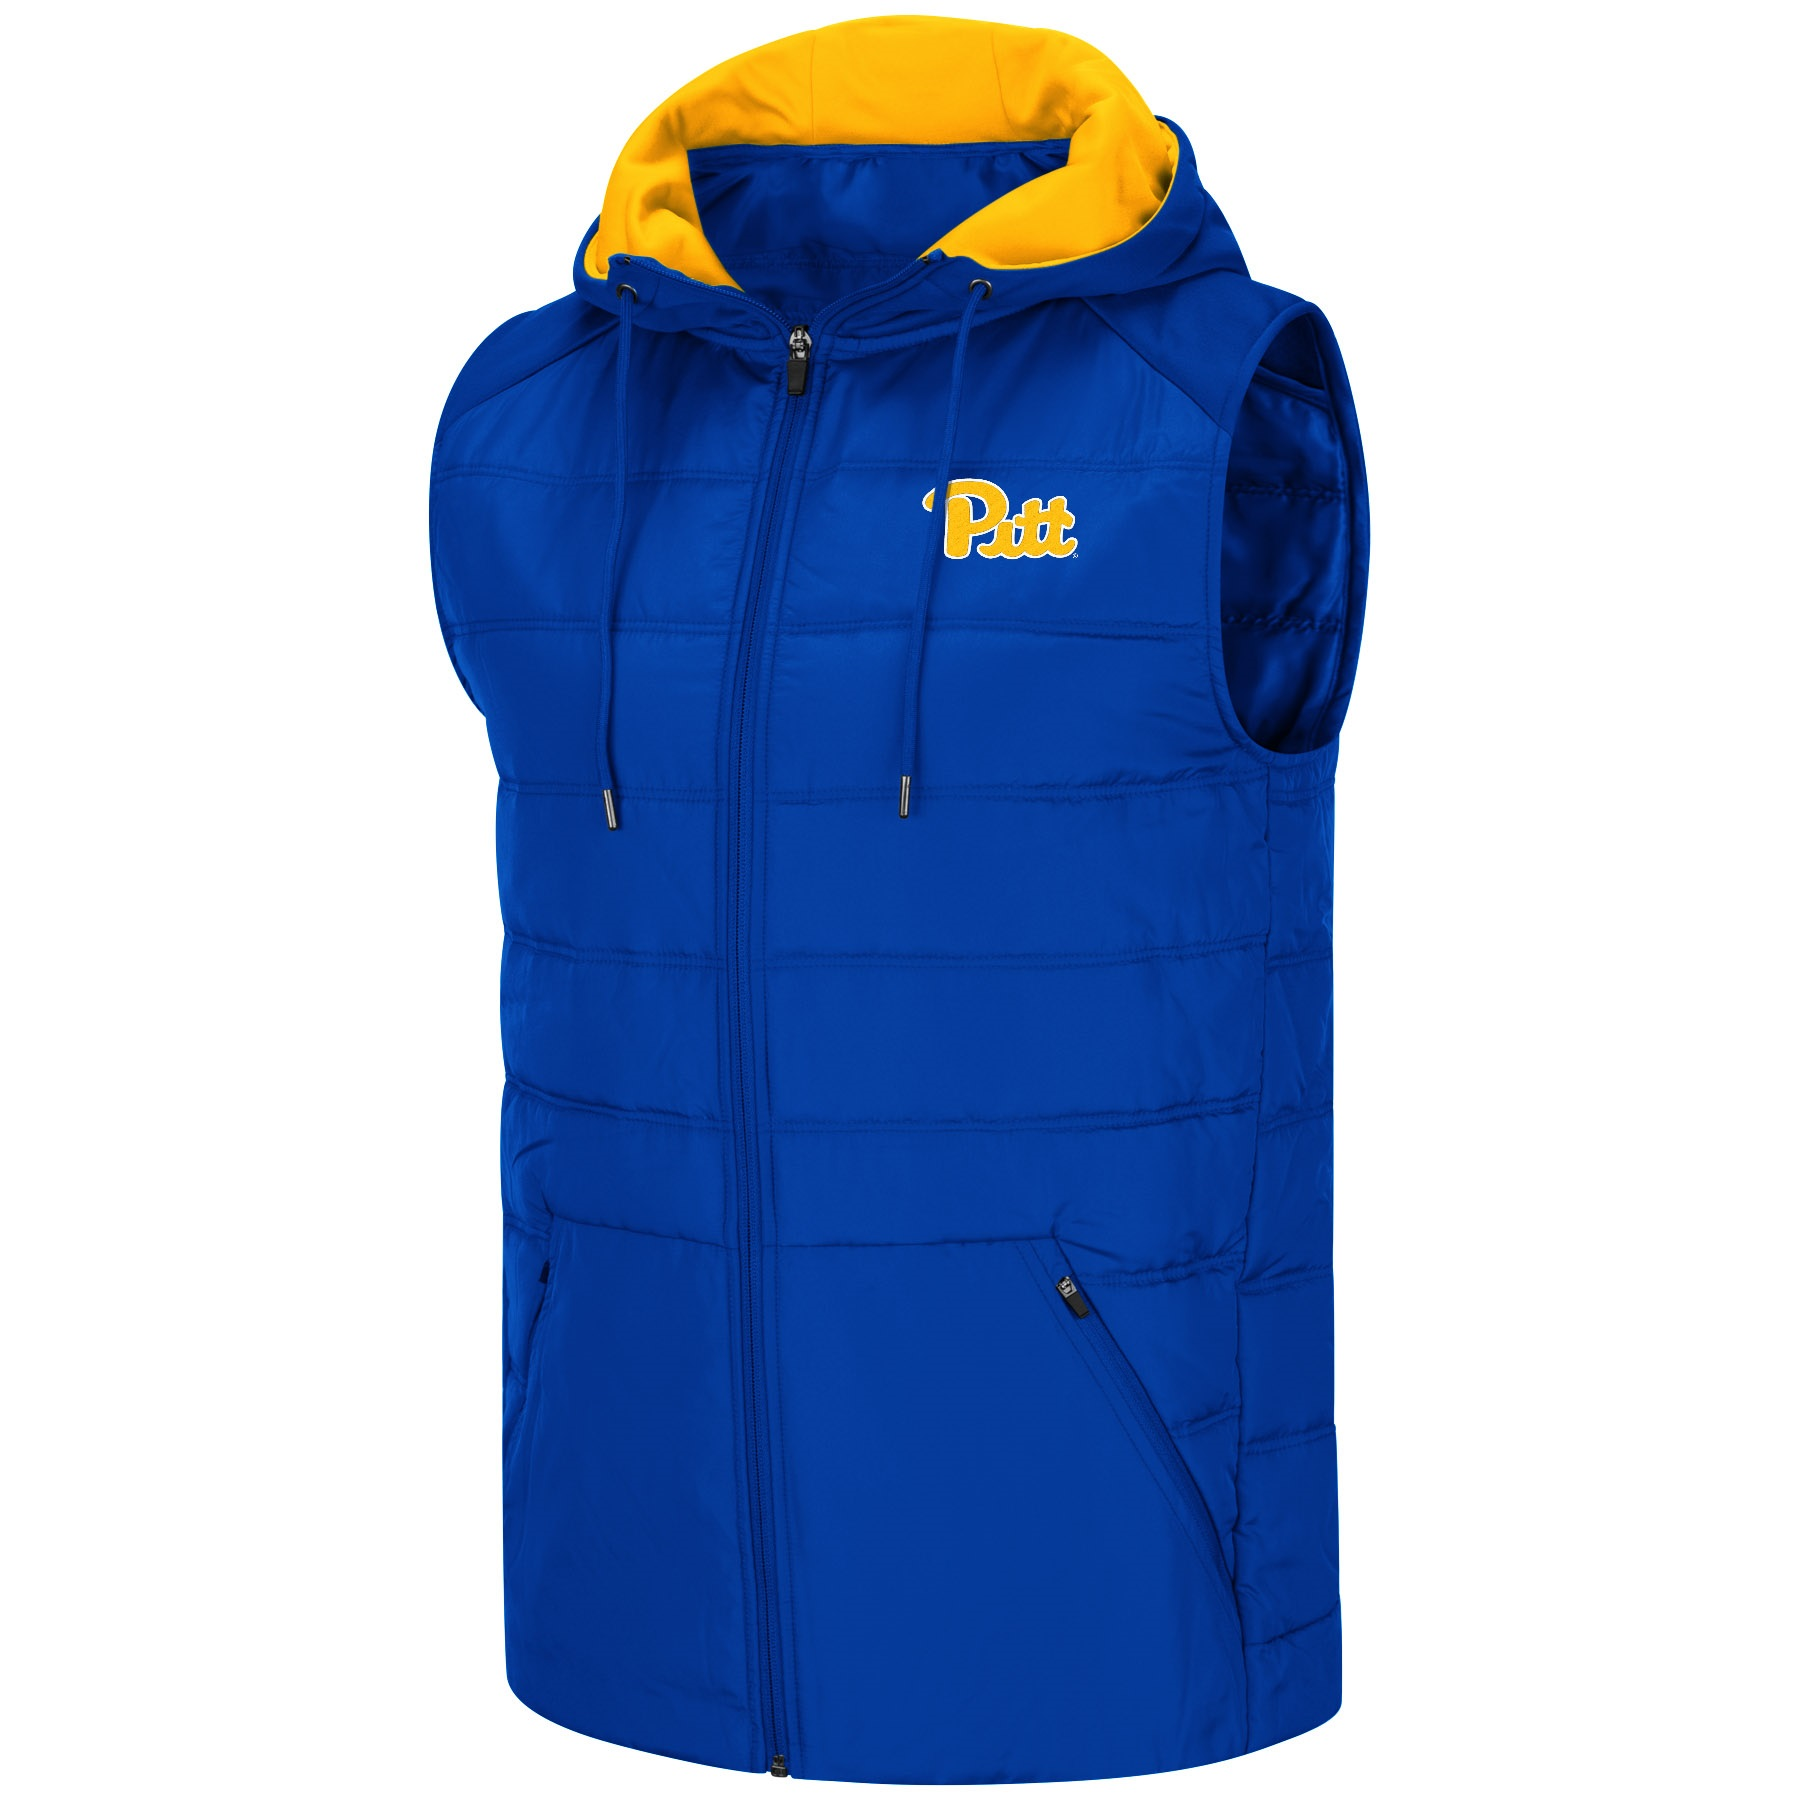 Image For Colosseum Men's Pitt Hooded Vest